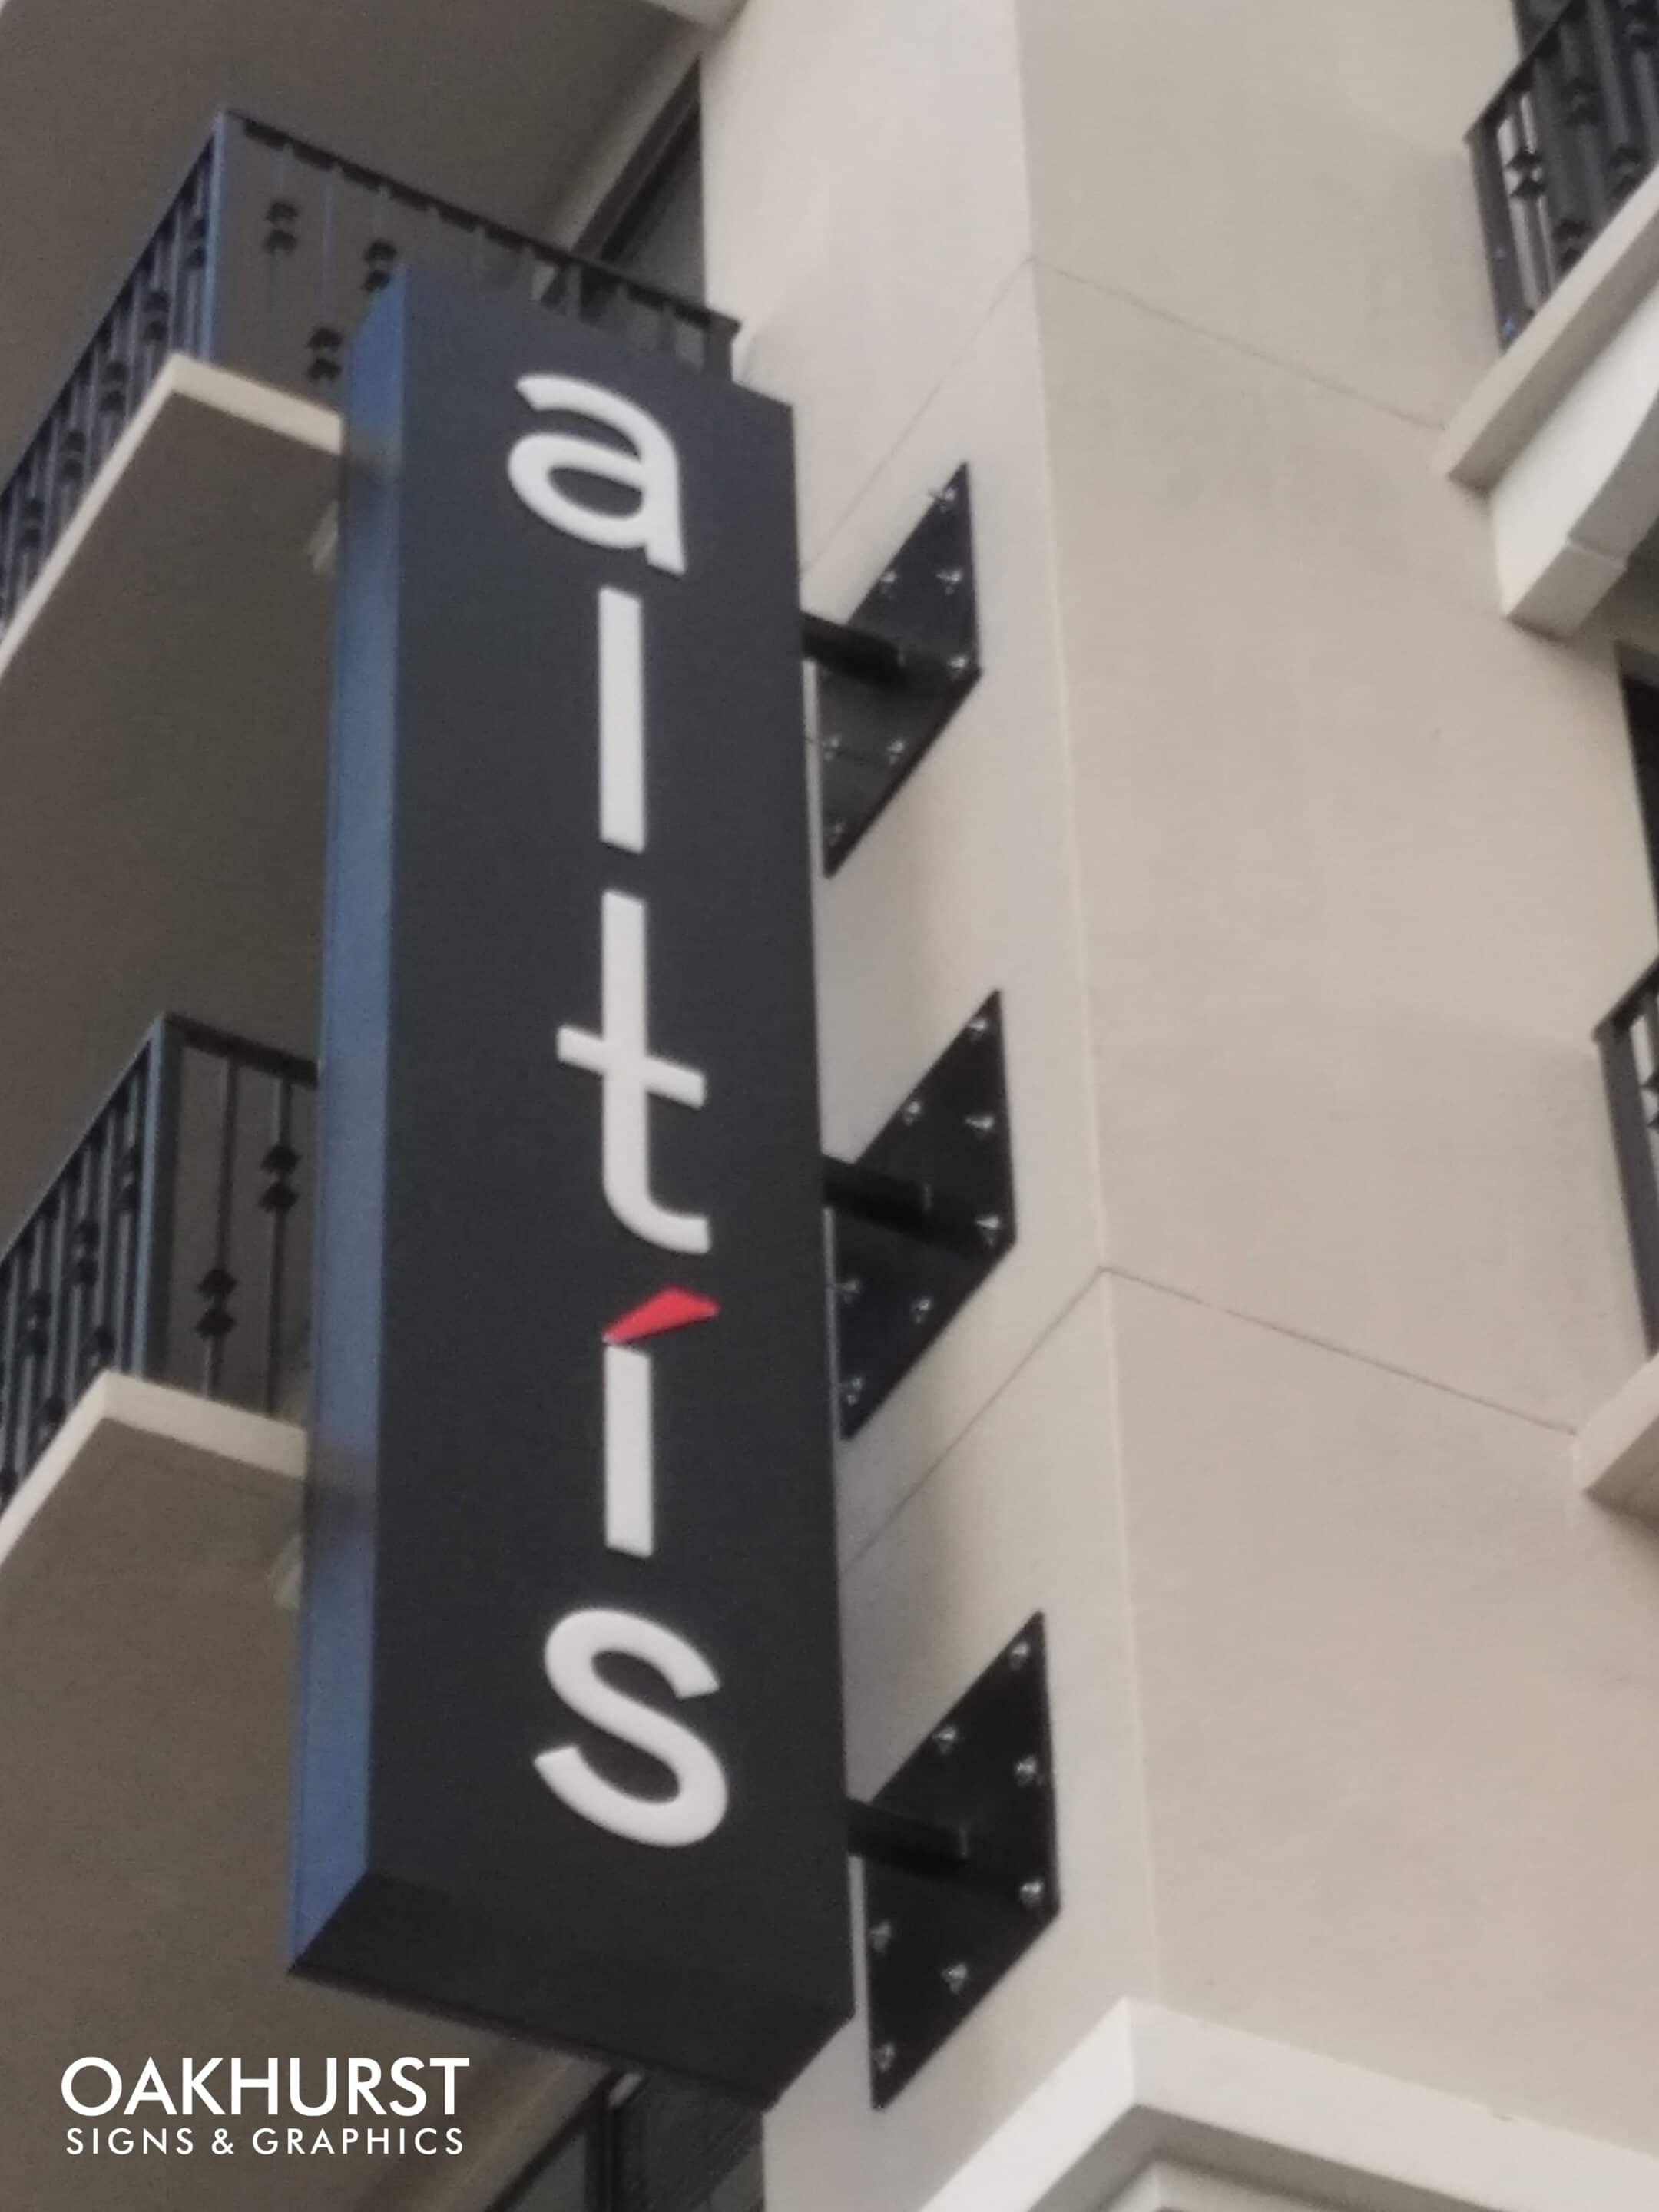 Altis blade sign on building exterior